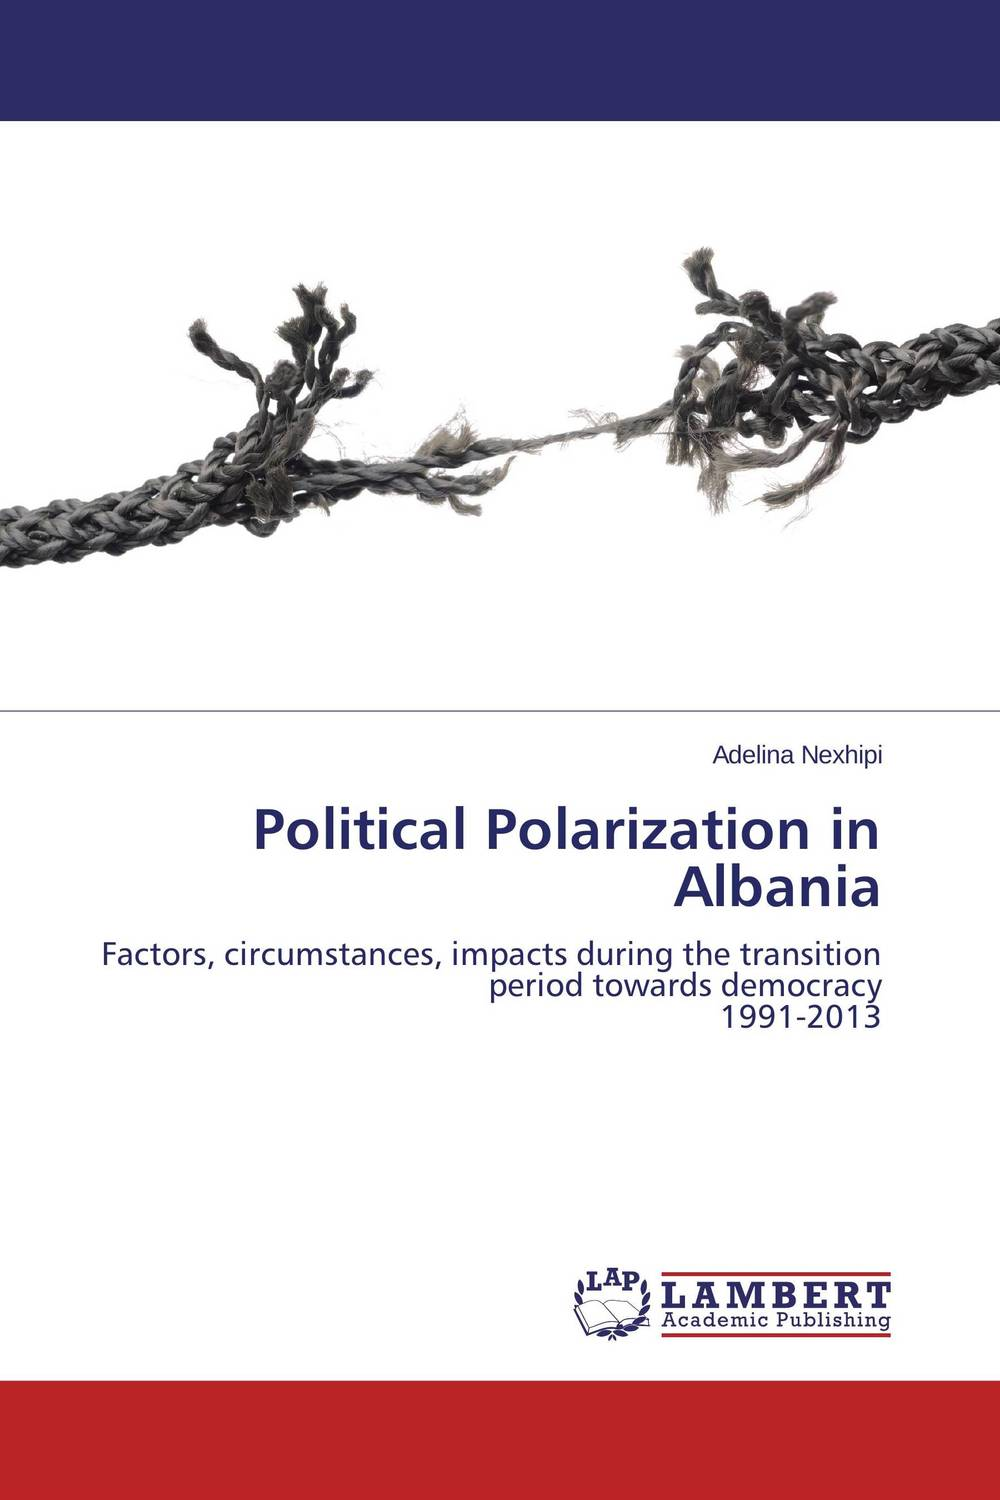 Political Polarization in Albania identity of political parties in albania